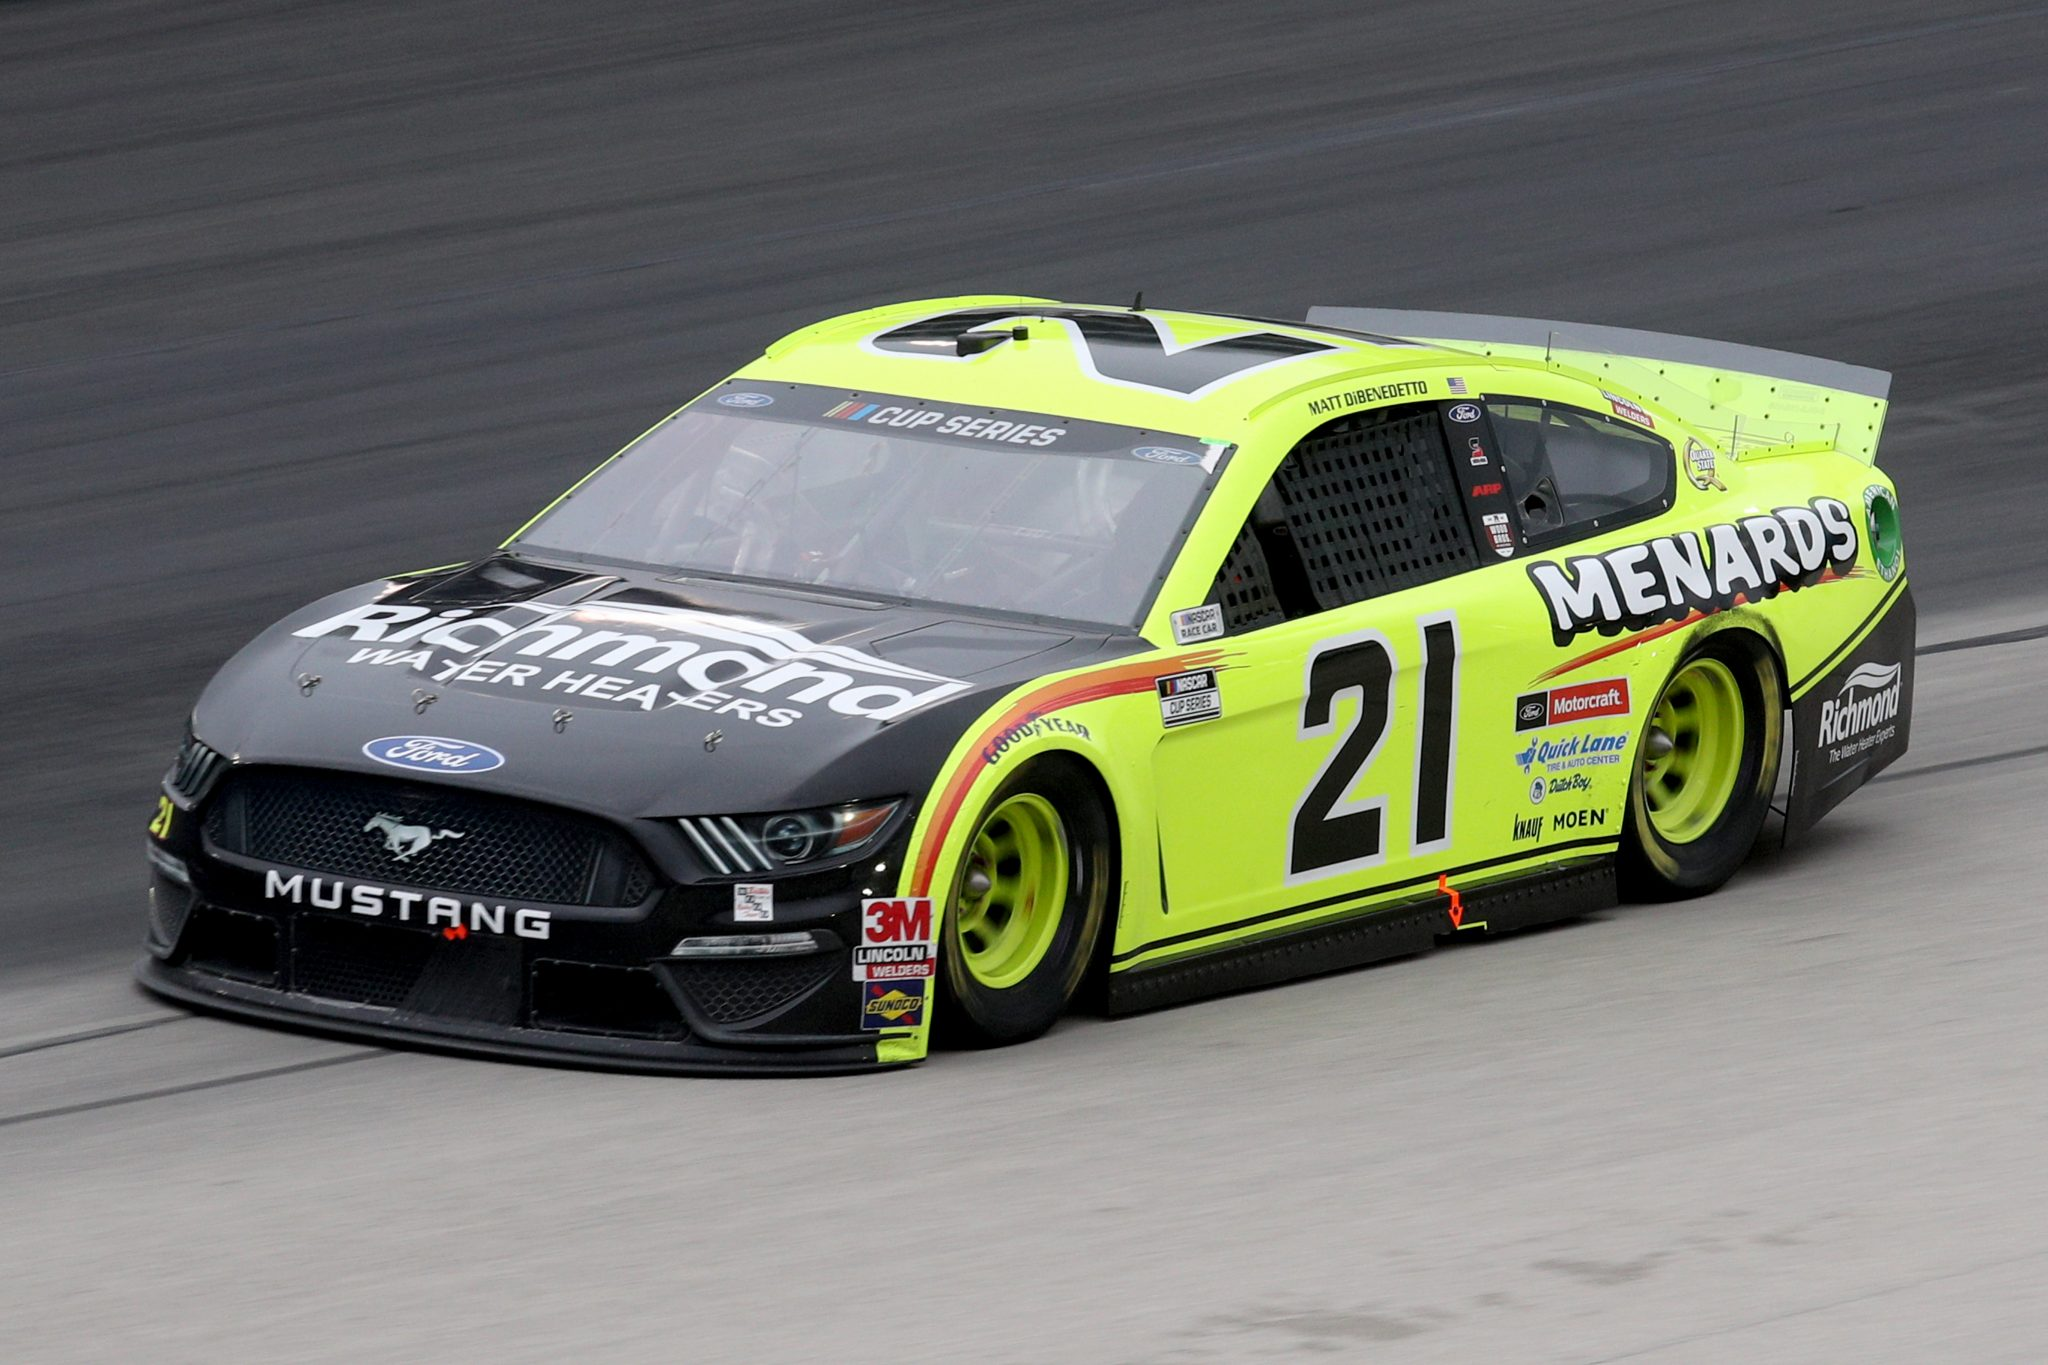 FORT WORTH, TEXAS - OCTOBER 28: Matt DiBenedetto, driver of the #21 Menards/Richmond Ford, drives during the NASCAR Cup Series Autotrader EchoPark Automotive 500 at Texas Motor Speedway on October 28, 2020 in Fort Worth, Texas. (Photo by Chris Graythen/Getty Images)   Getty Images